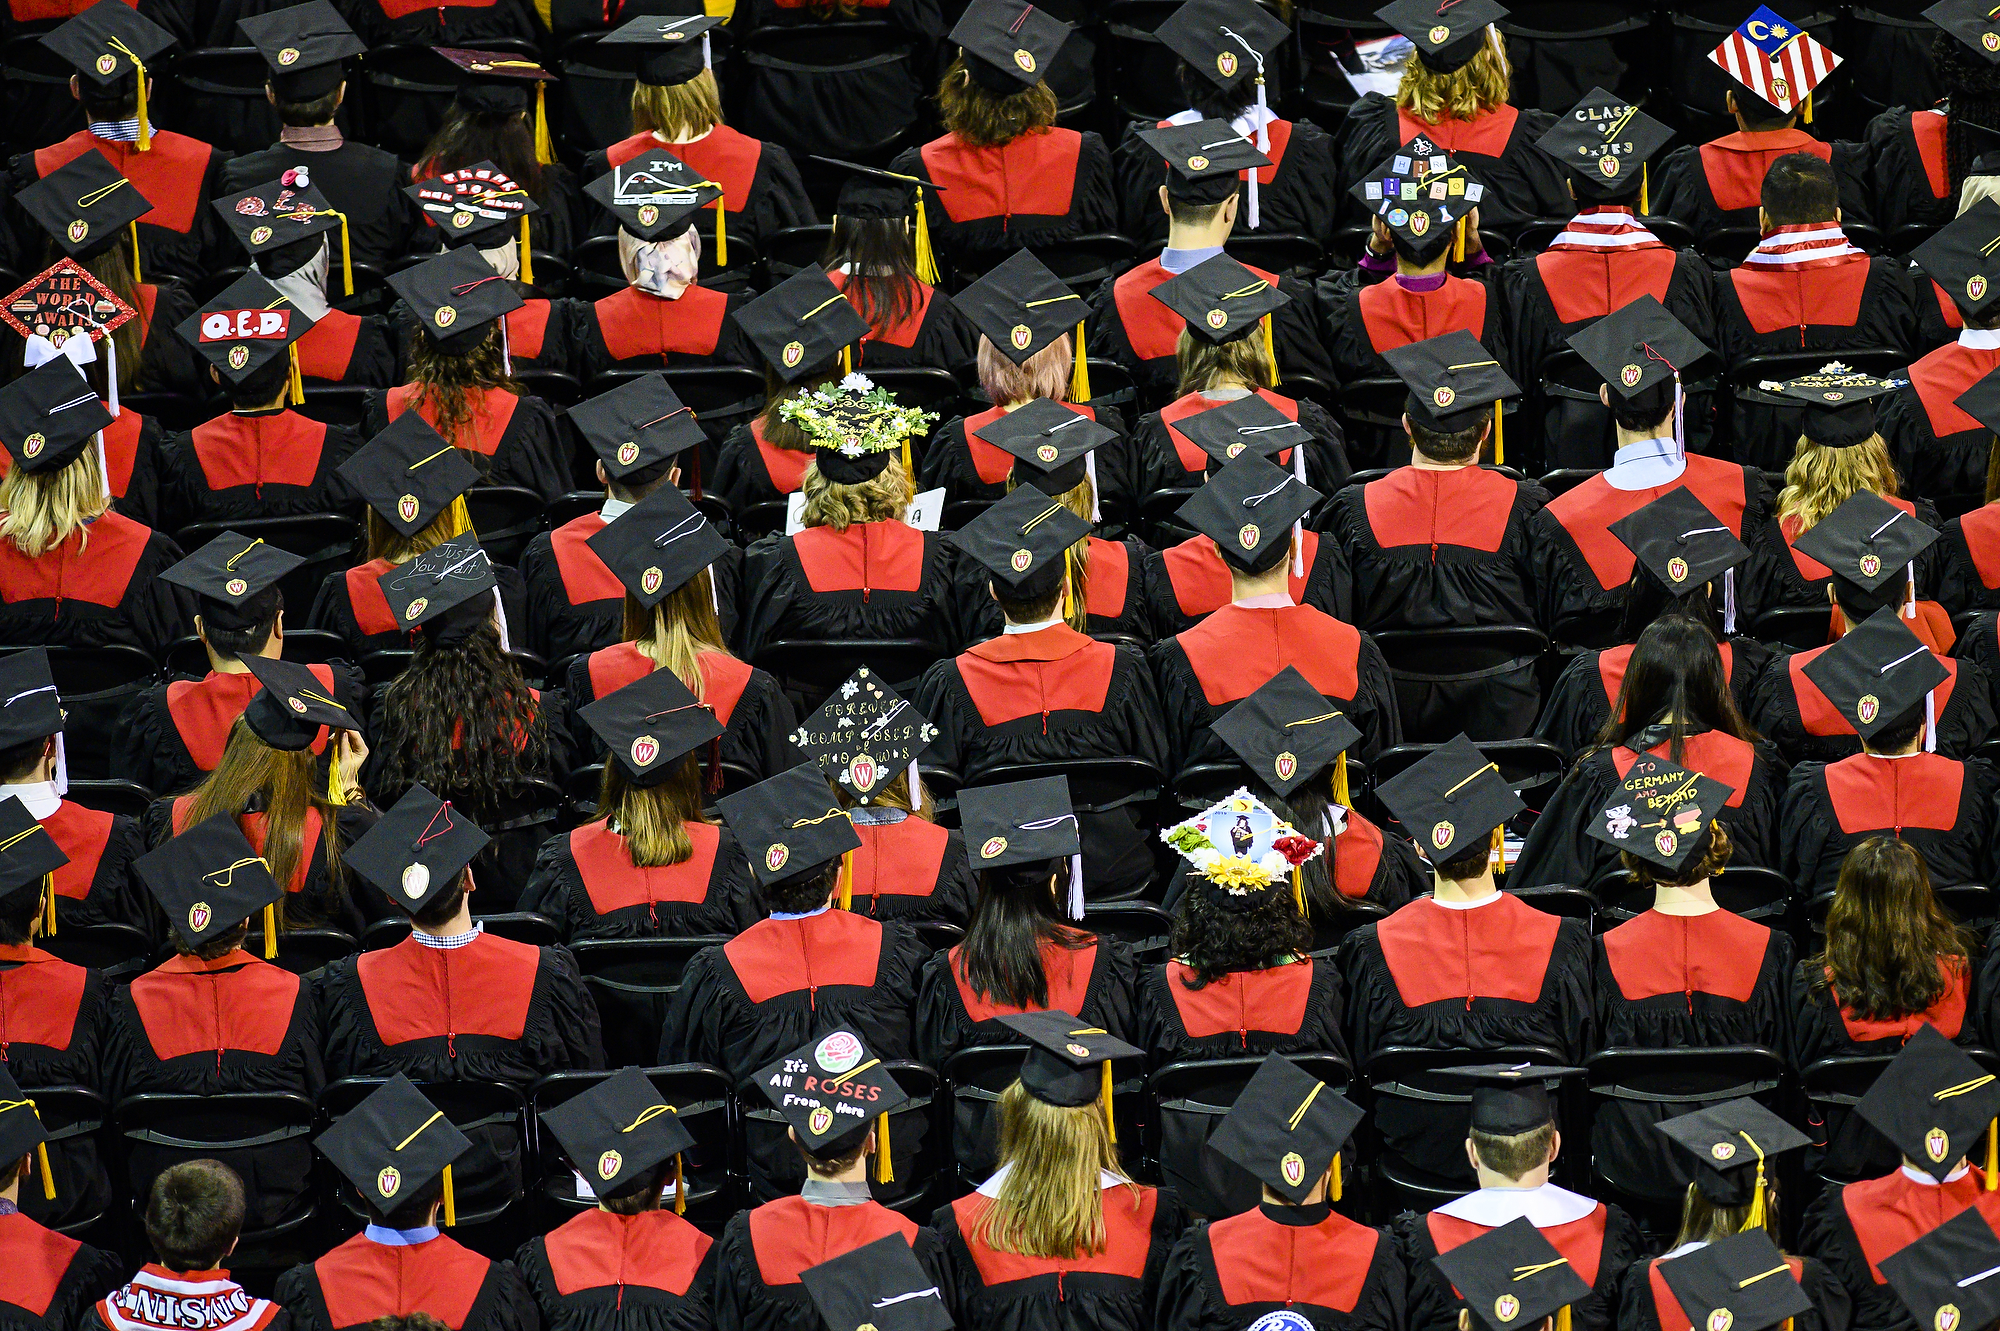 Photo from above of rows of seated graduates in caps and gowns.